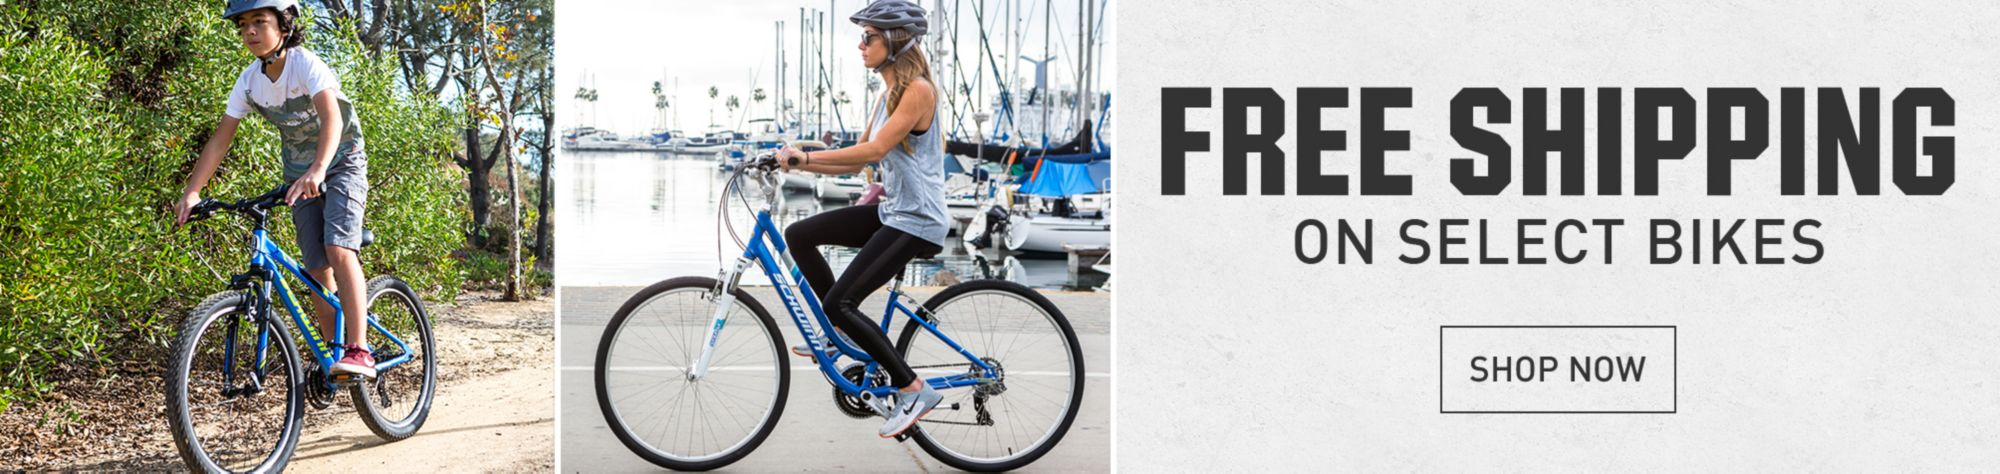 Free Shipping Select Bikes Shop Now